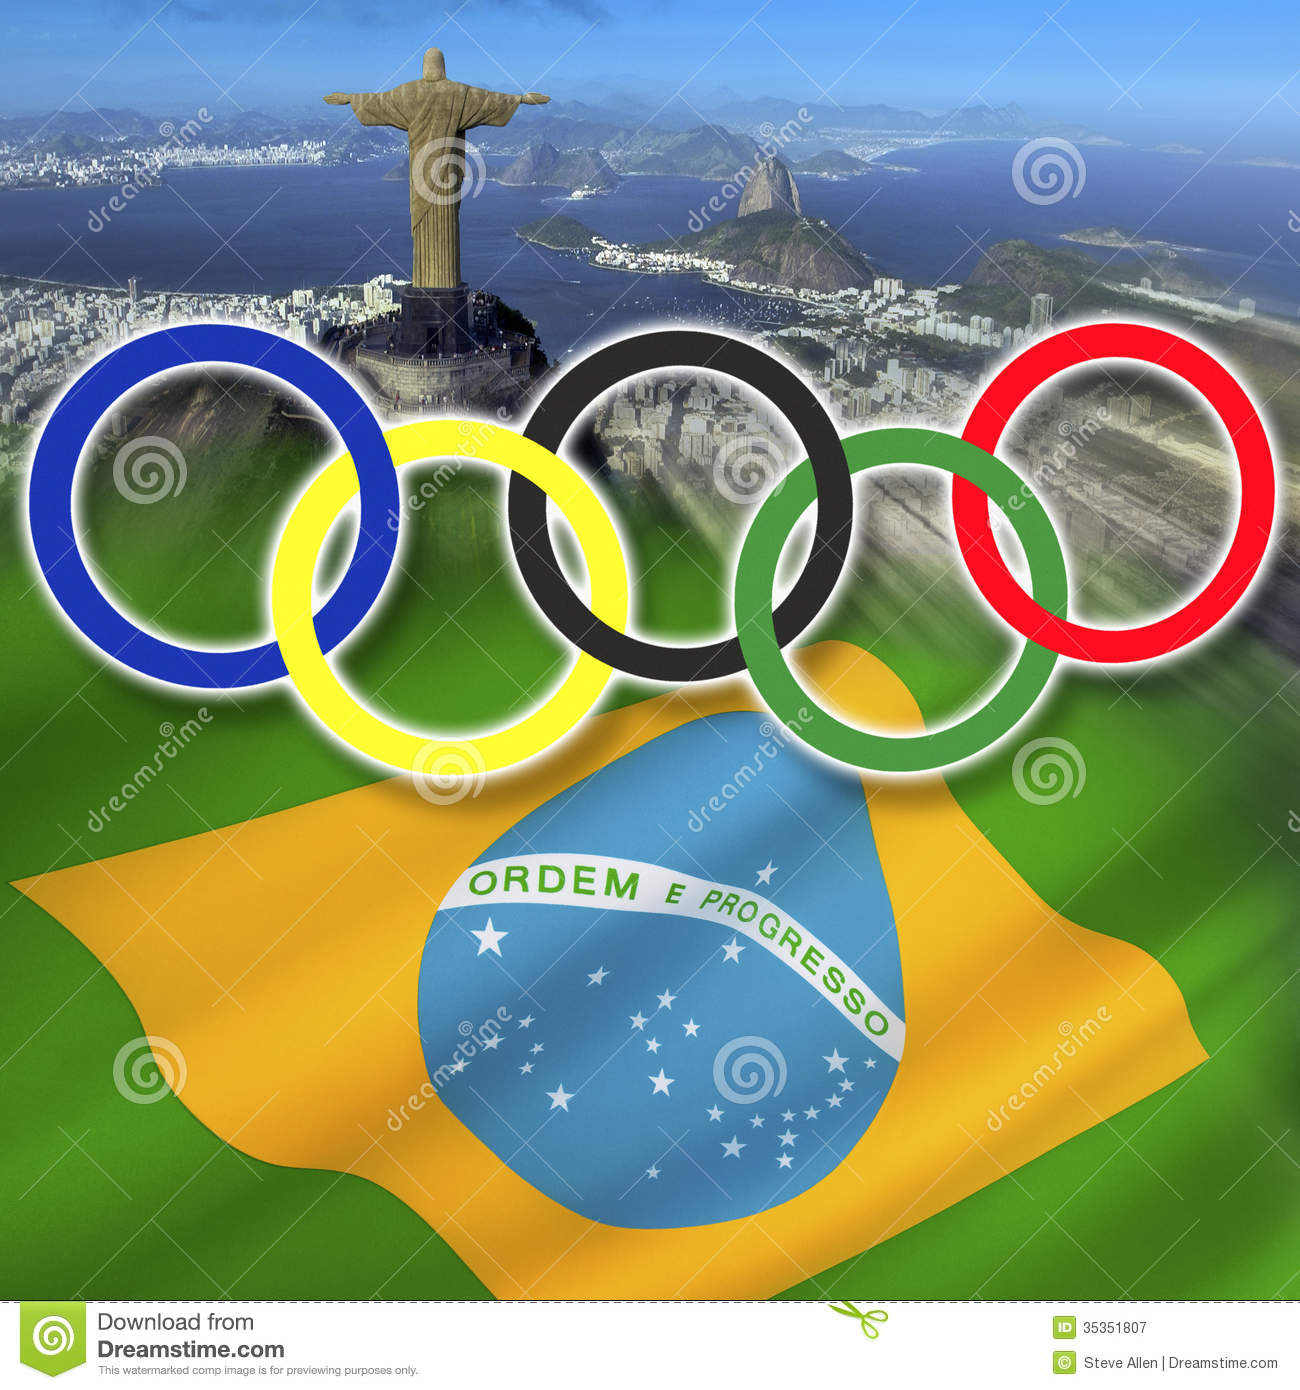 The Olympic Rings over the city of Rio de Janeiro and the national    Olympic Rings 2016